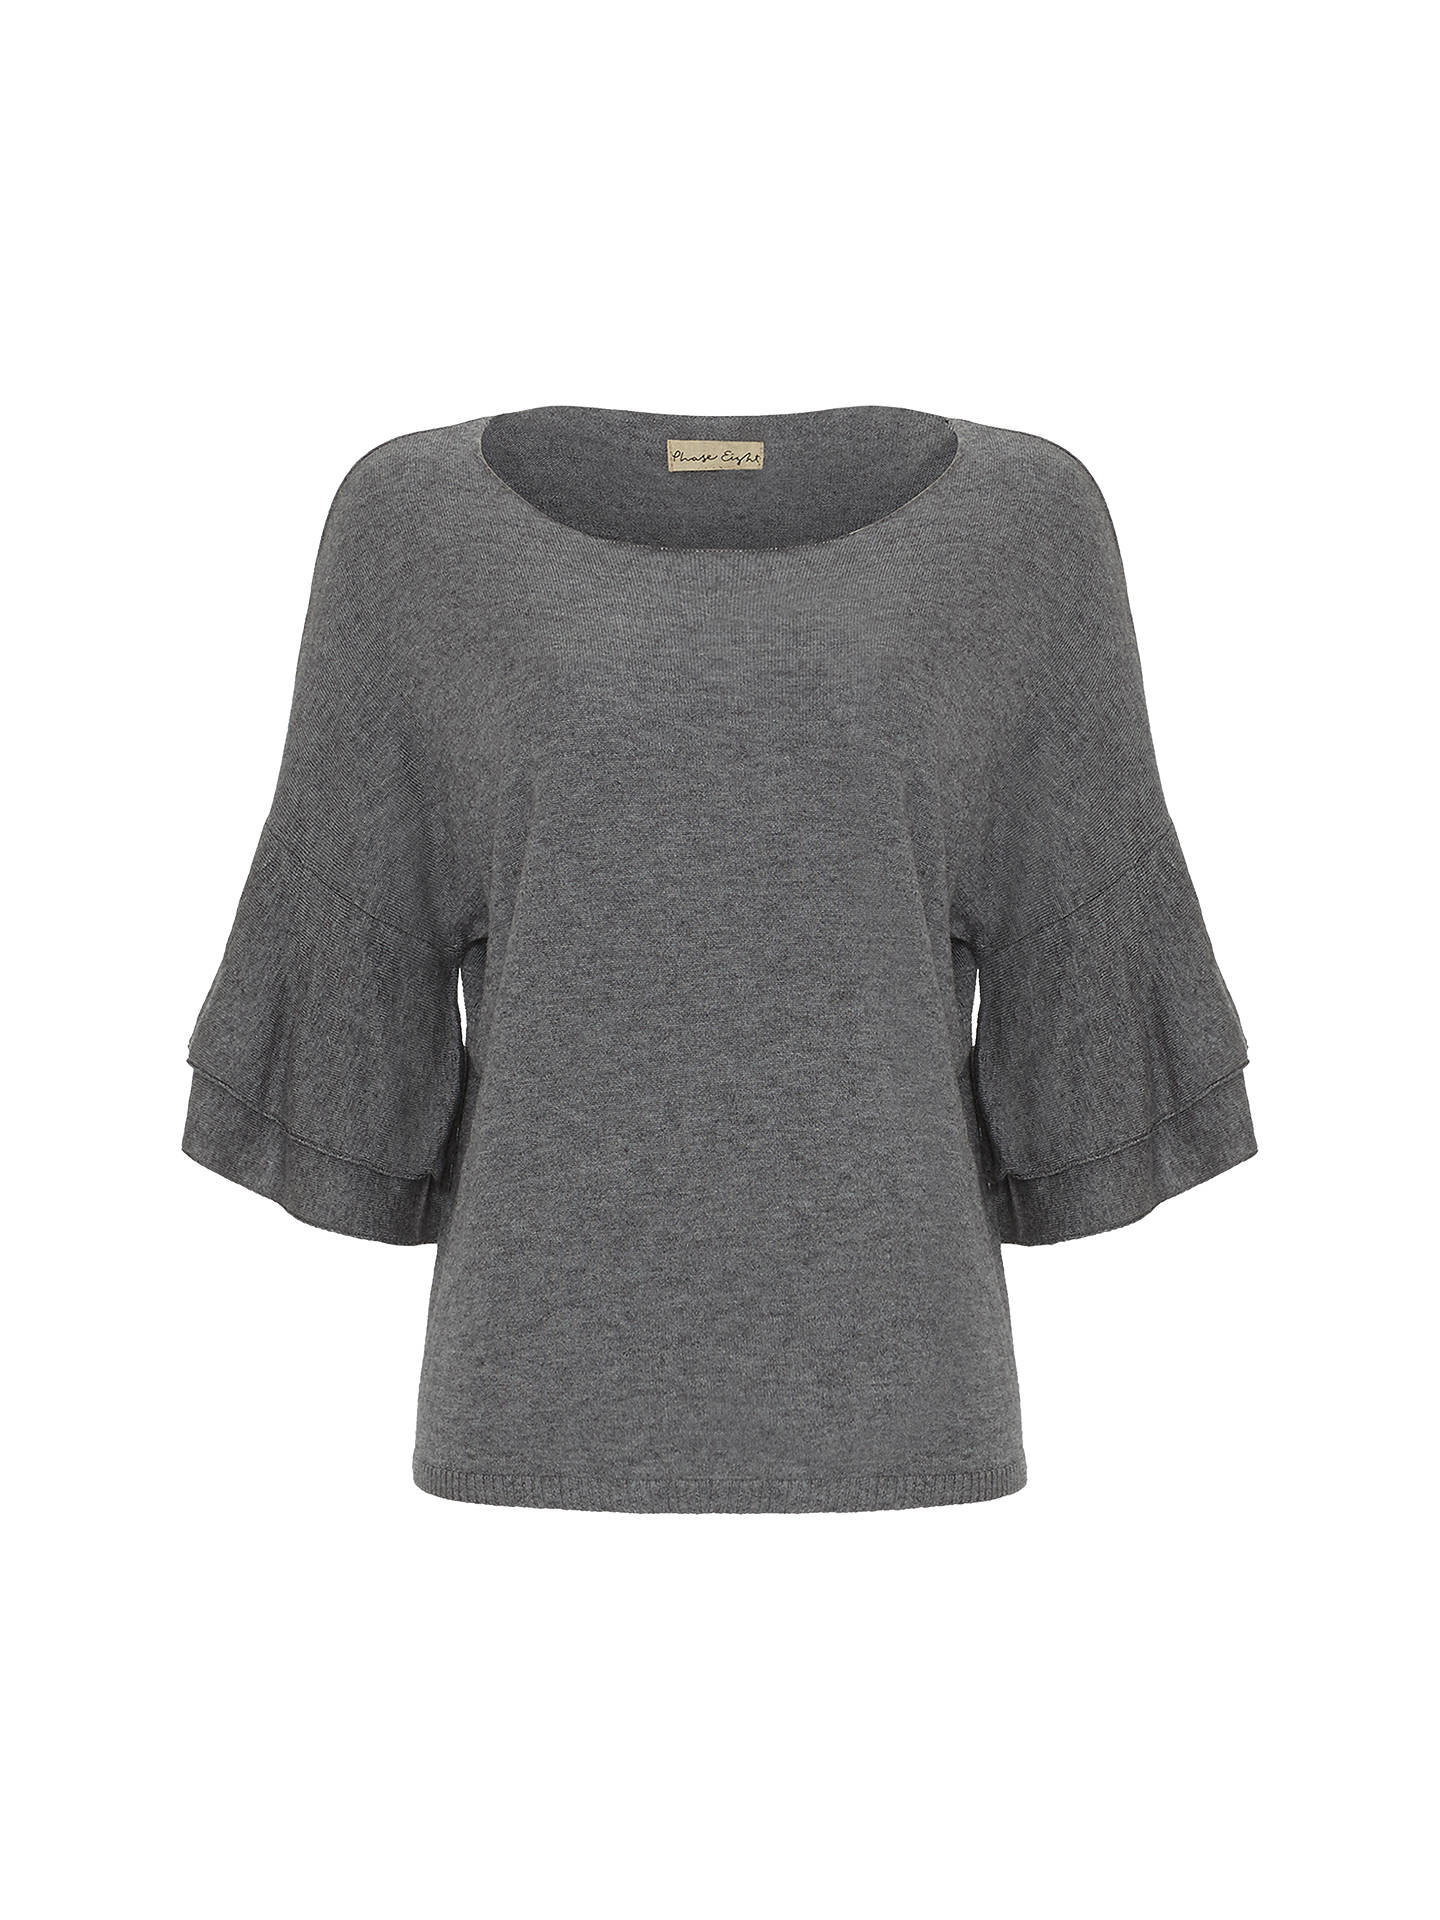 BuyPhase Eight Damia Double Frill Sleeve Knit Top, Grey, XS Online at johnlewis.com